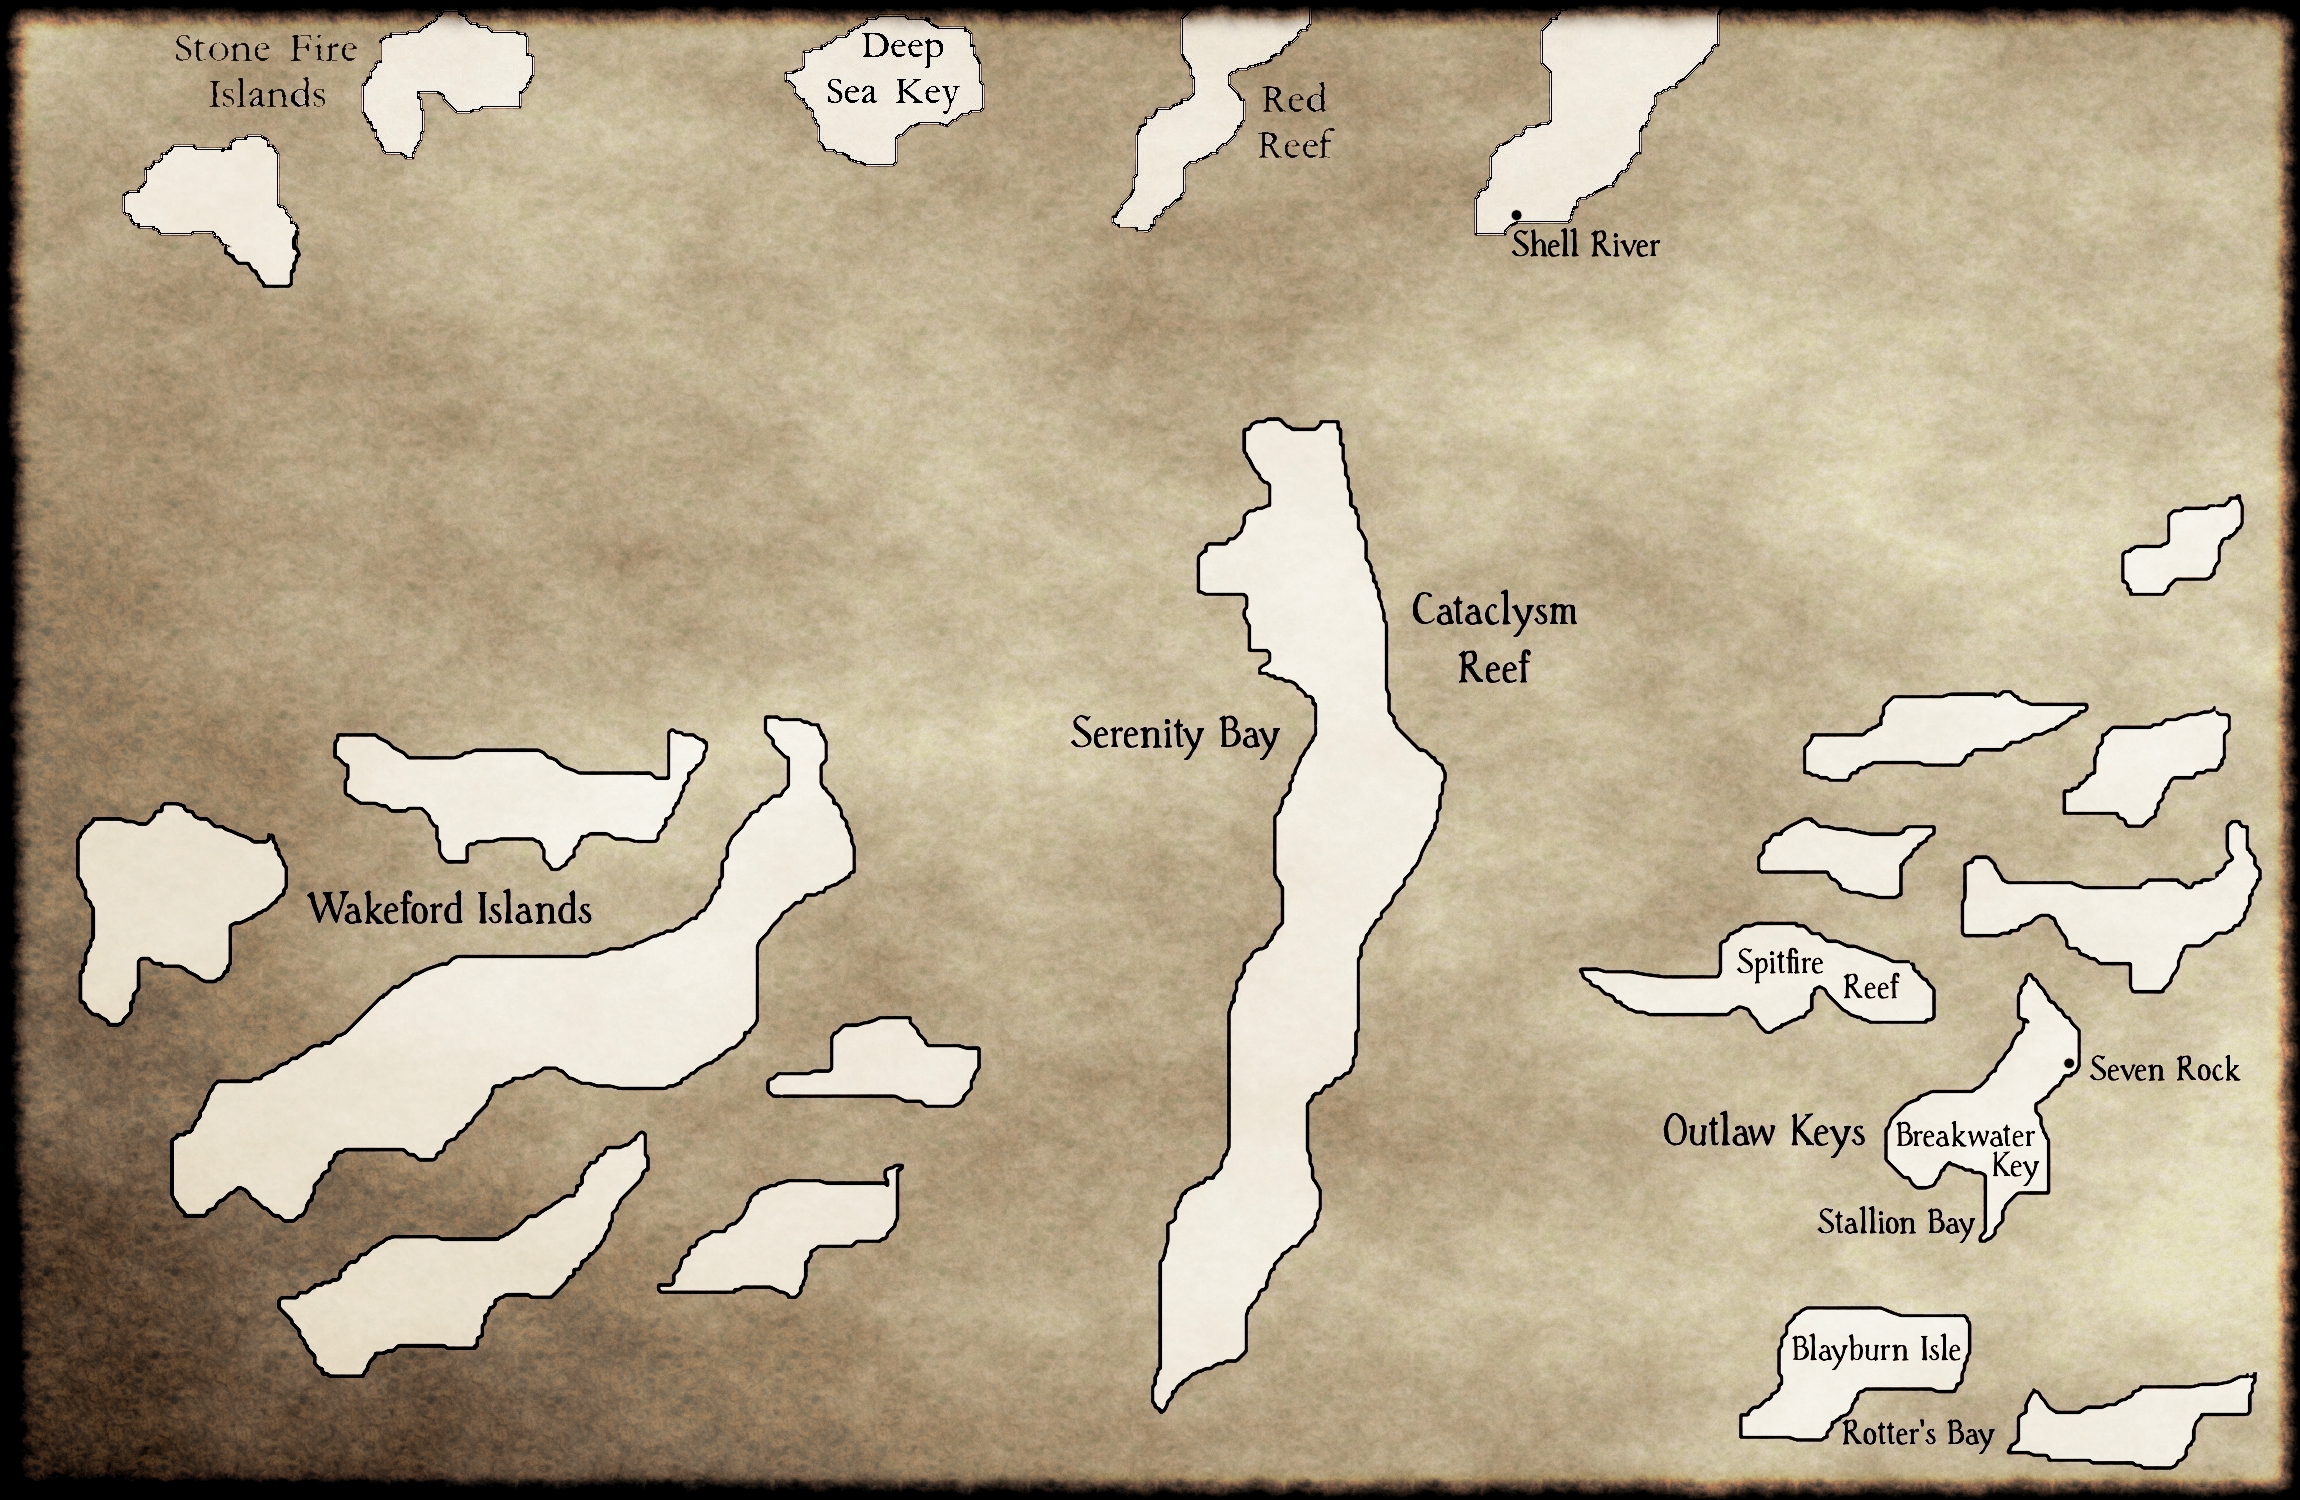 Wakeford Islands and Outlaw Keys Old Map